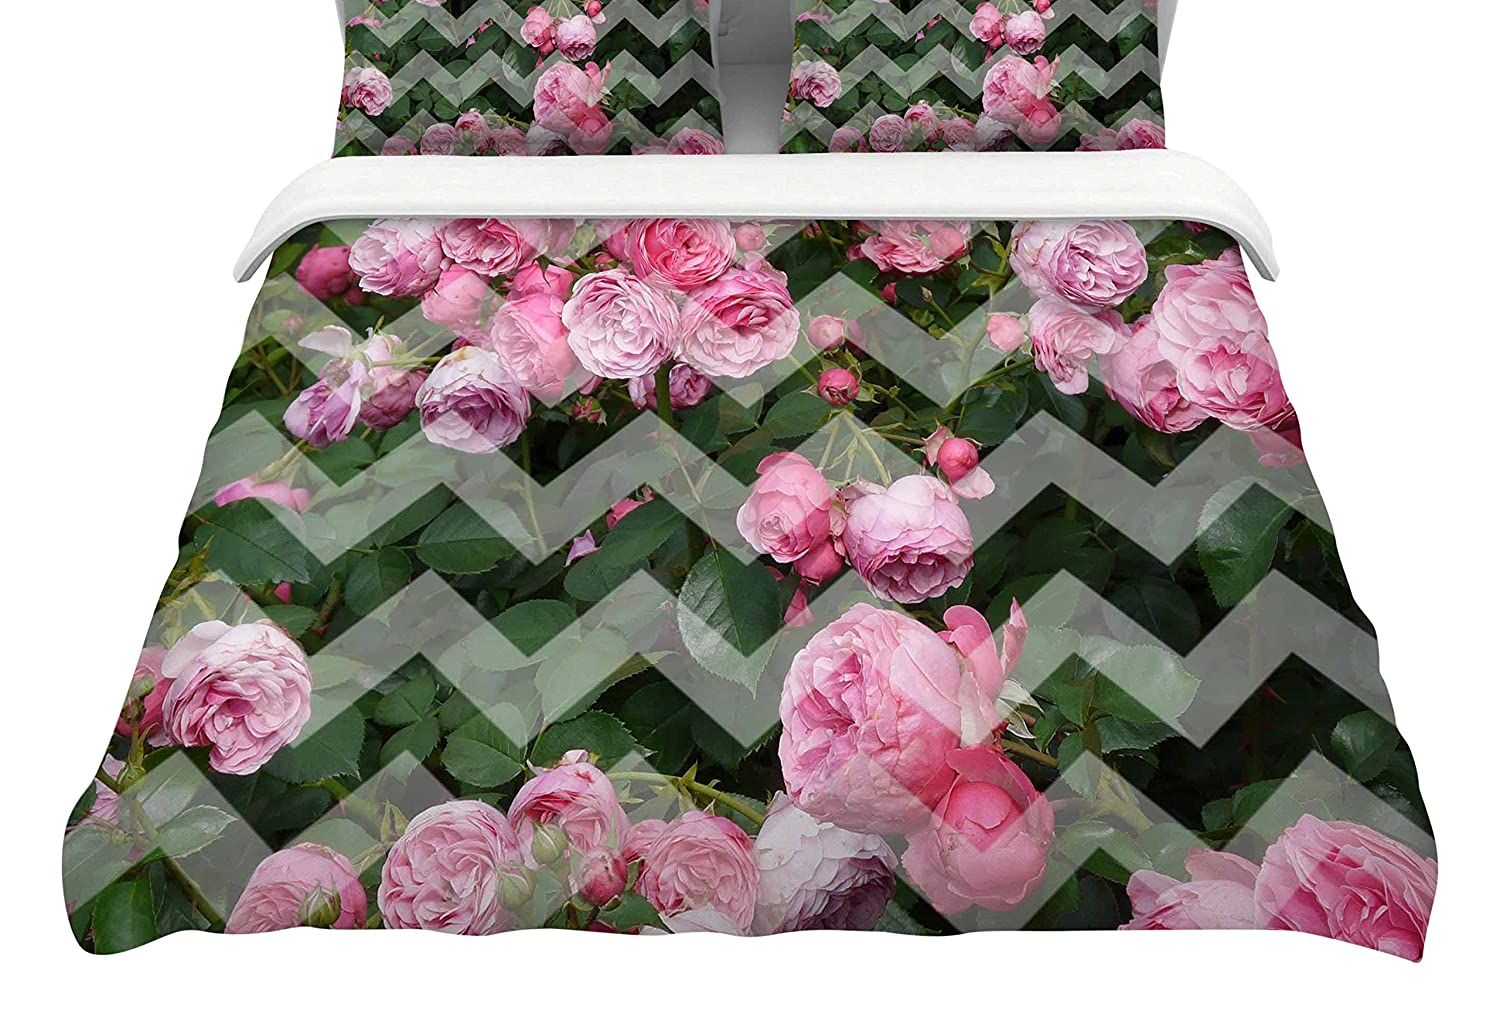 104 by 88-Inch Kess InHouse Suzanne Carter Chevron Rose Pink Green King Cotton Duvet Cover